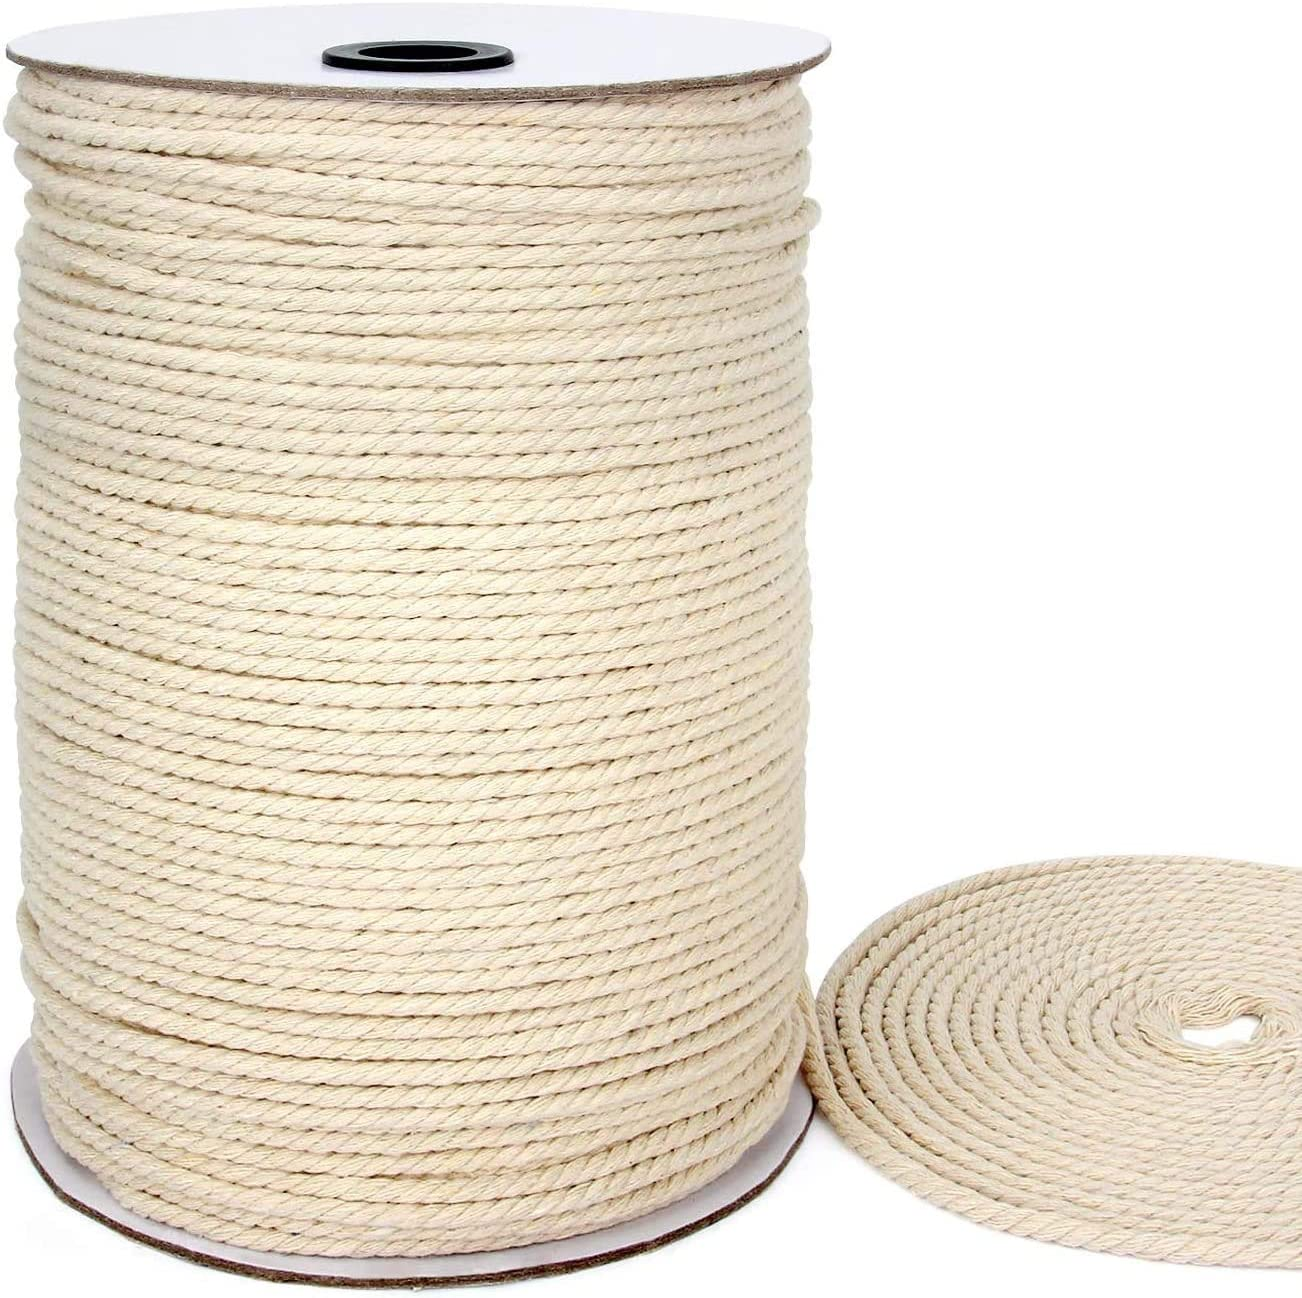 Blisstime Macrame Cord 4mm X 328Yards |Natural Cotton Macrame Rope|3 Strand Twisted Cotton Cord | Soft Undyed Cotton Rope for Wall Hangings, Plant Hangers, Crafts, Knitting, Decorative Projects